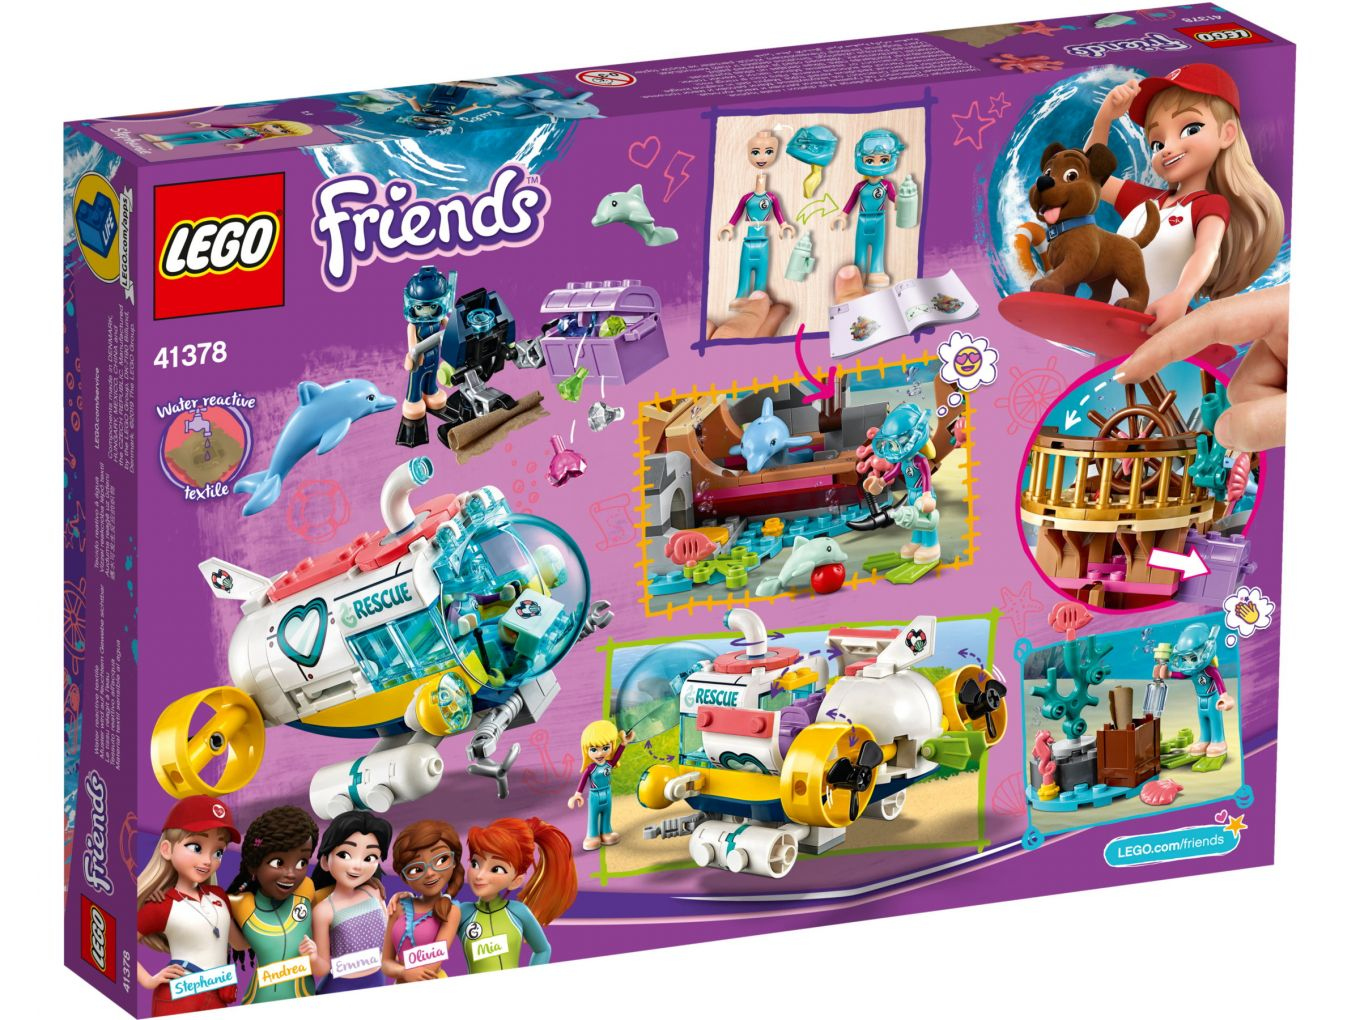 lego-friends-dolphin-rescue-41378-box-2019-back zusammengebaut.com